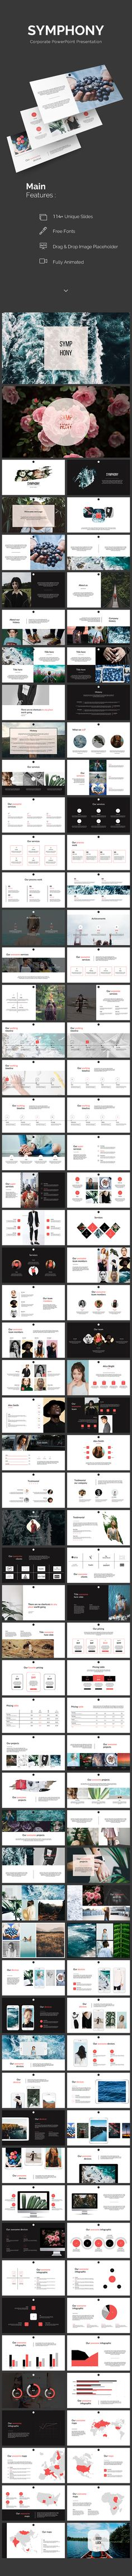 Symphony PowerPoint Template — Powerpoint PPT #corporate #enterprise • Download ➝ https://graphicriver.net/item/symphony-powerpoint-template/20014235?ref=pxcr